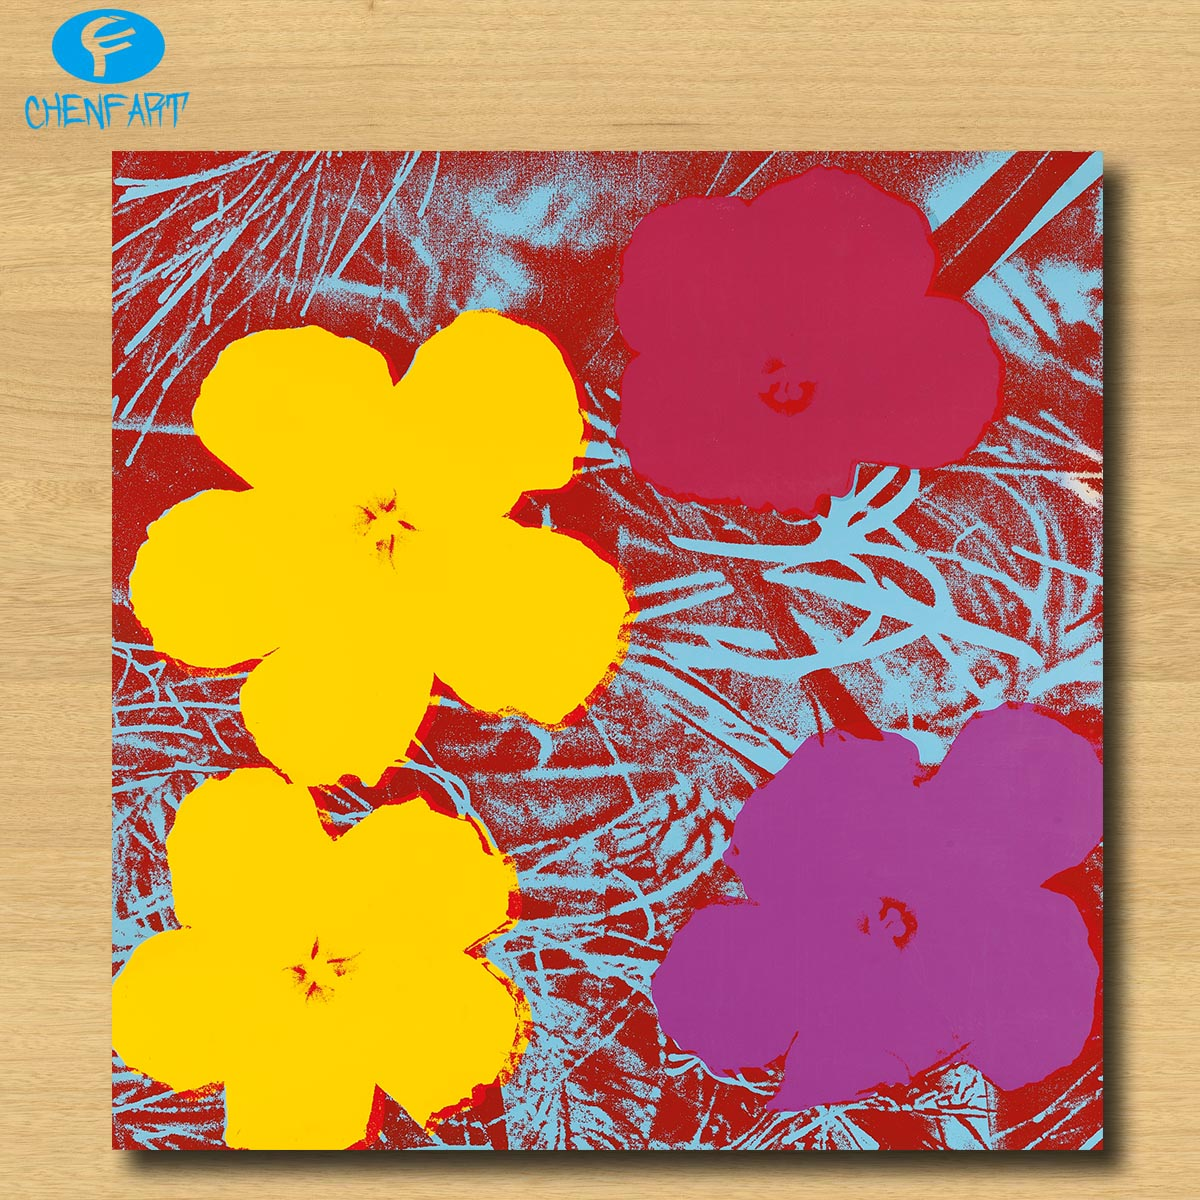 Huge FLOWERS (F. & S. II.71) by Andy Warhol wall art painting ...